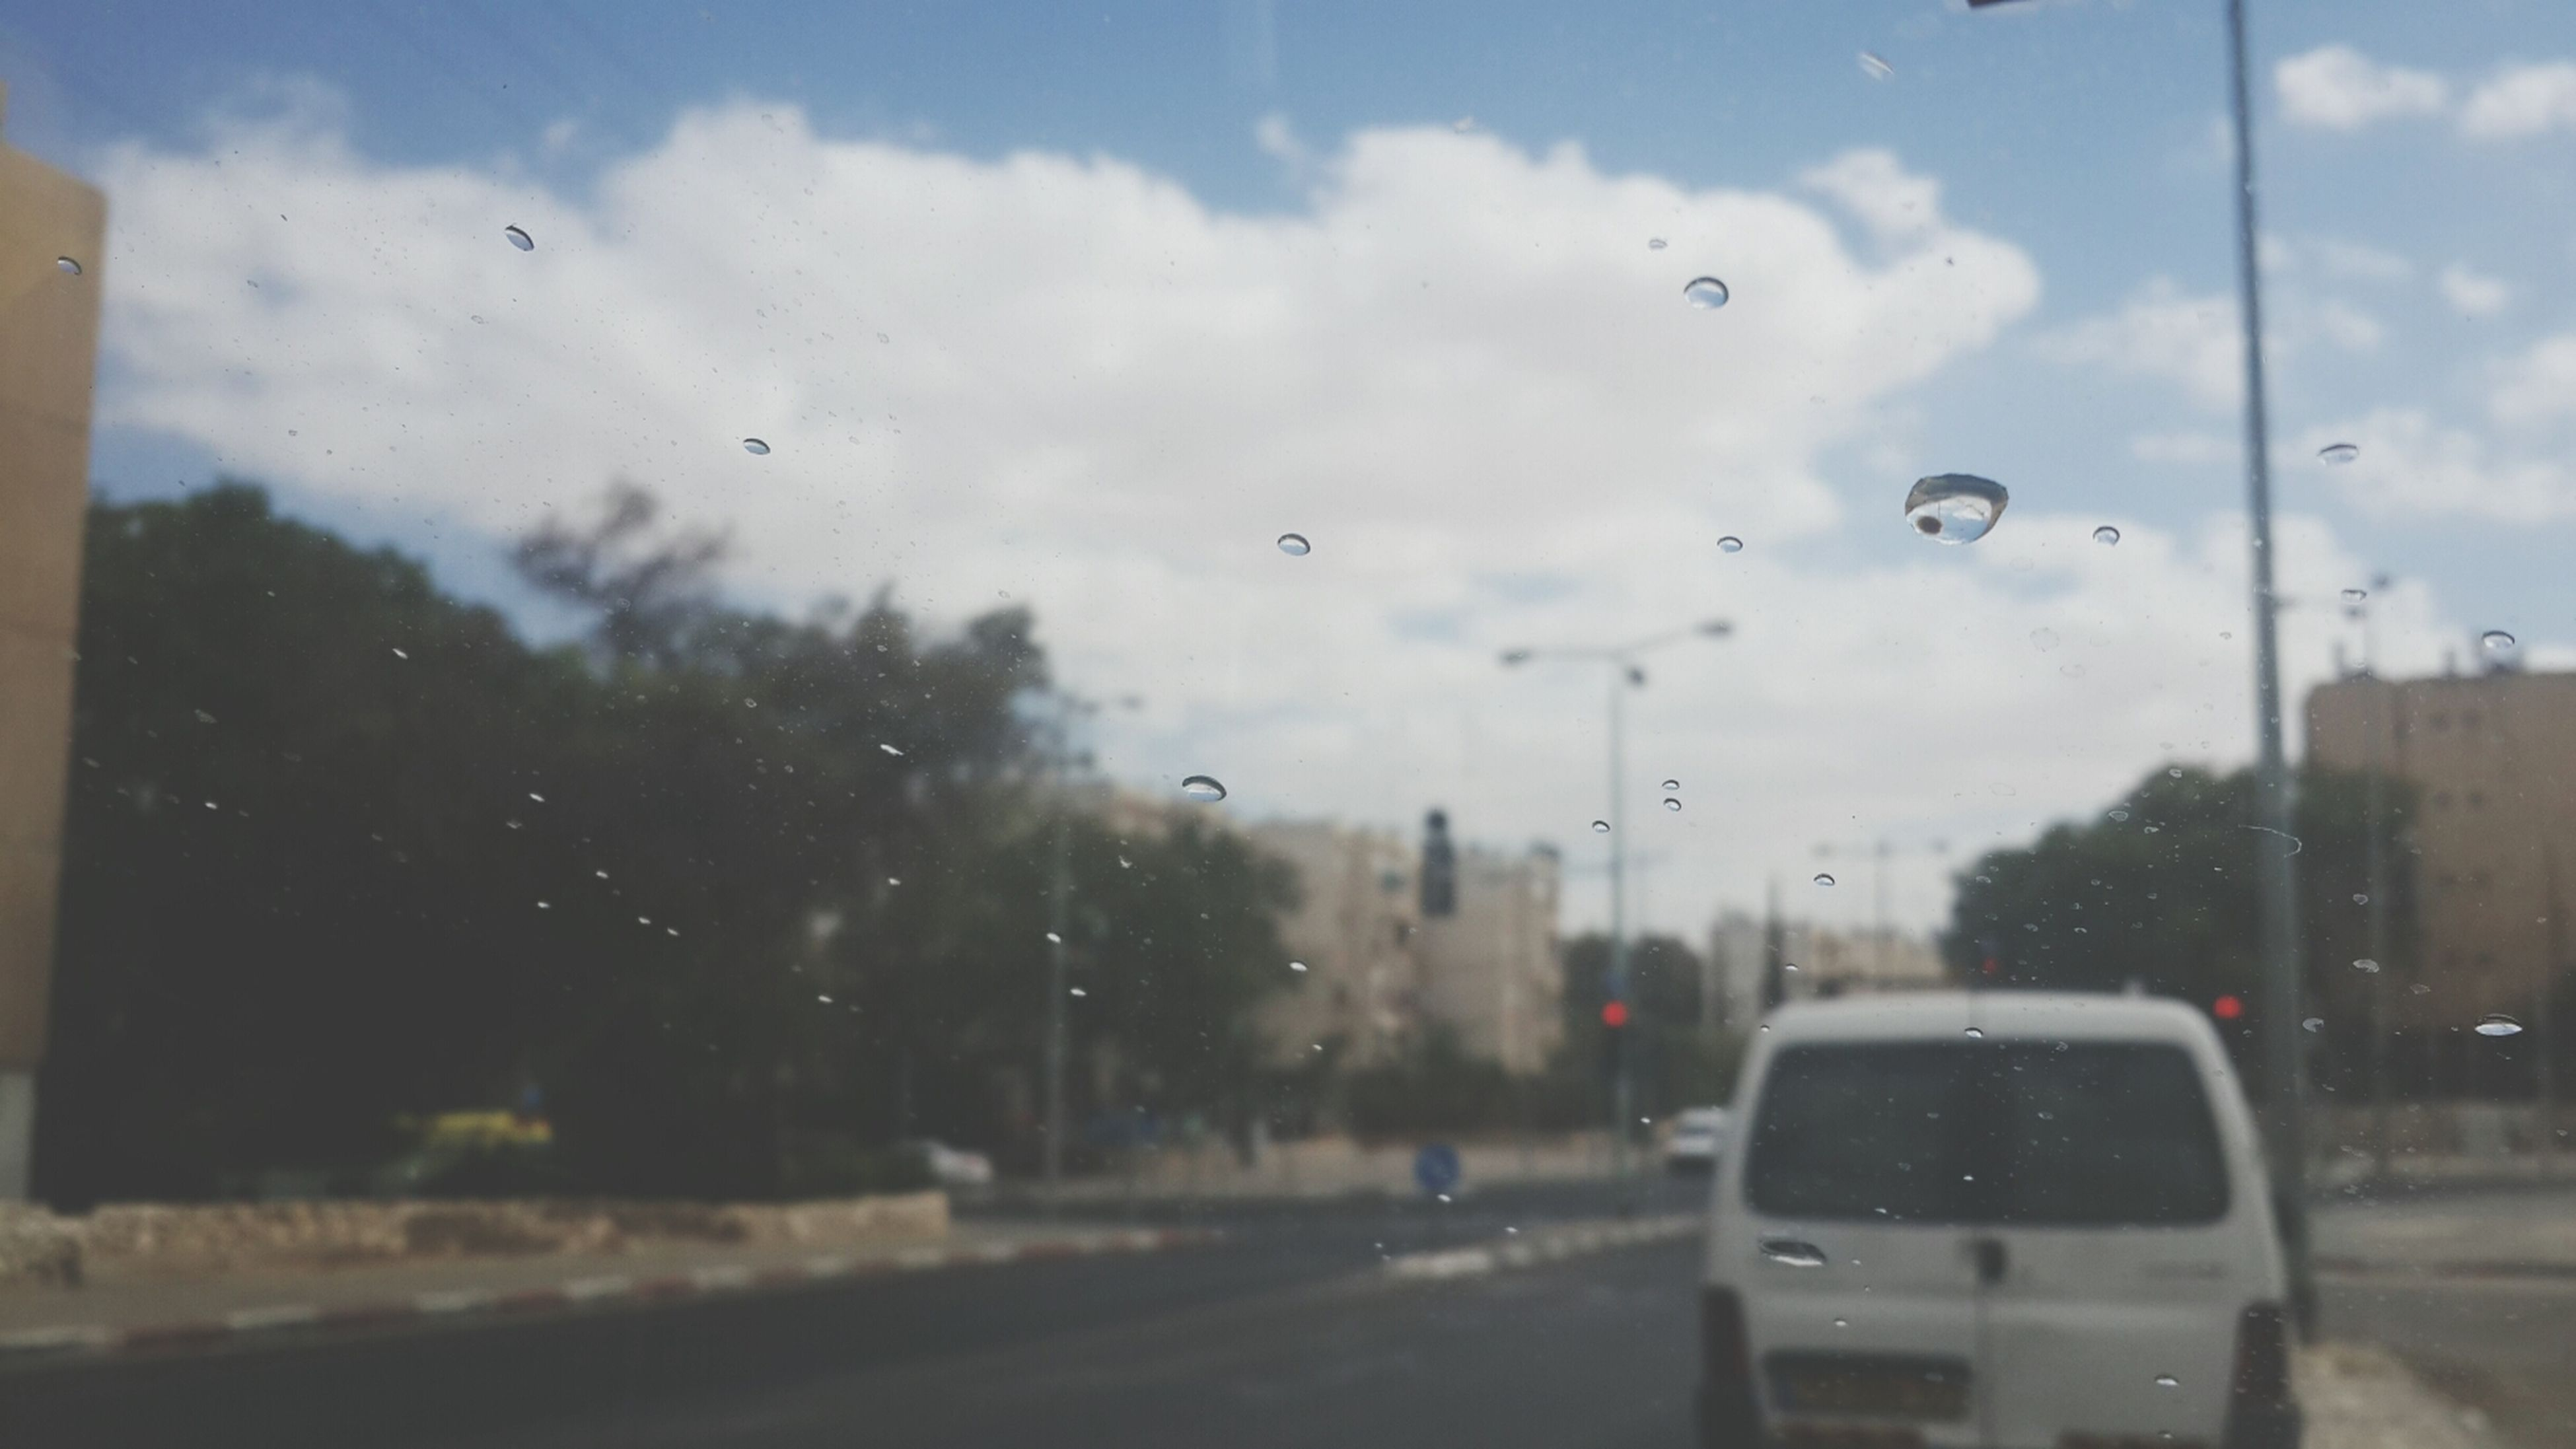 transparent, window, glass - material, transportation, wet, drop, car, rain, sky, mode of transport, land vehicle, vehicle interior, weather, water, indoors, season, road, raindrop, street, cloud - sky